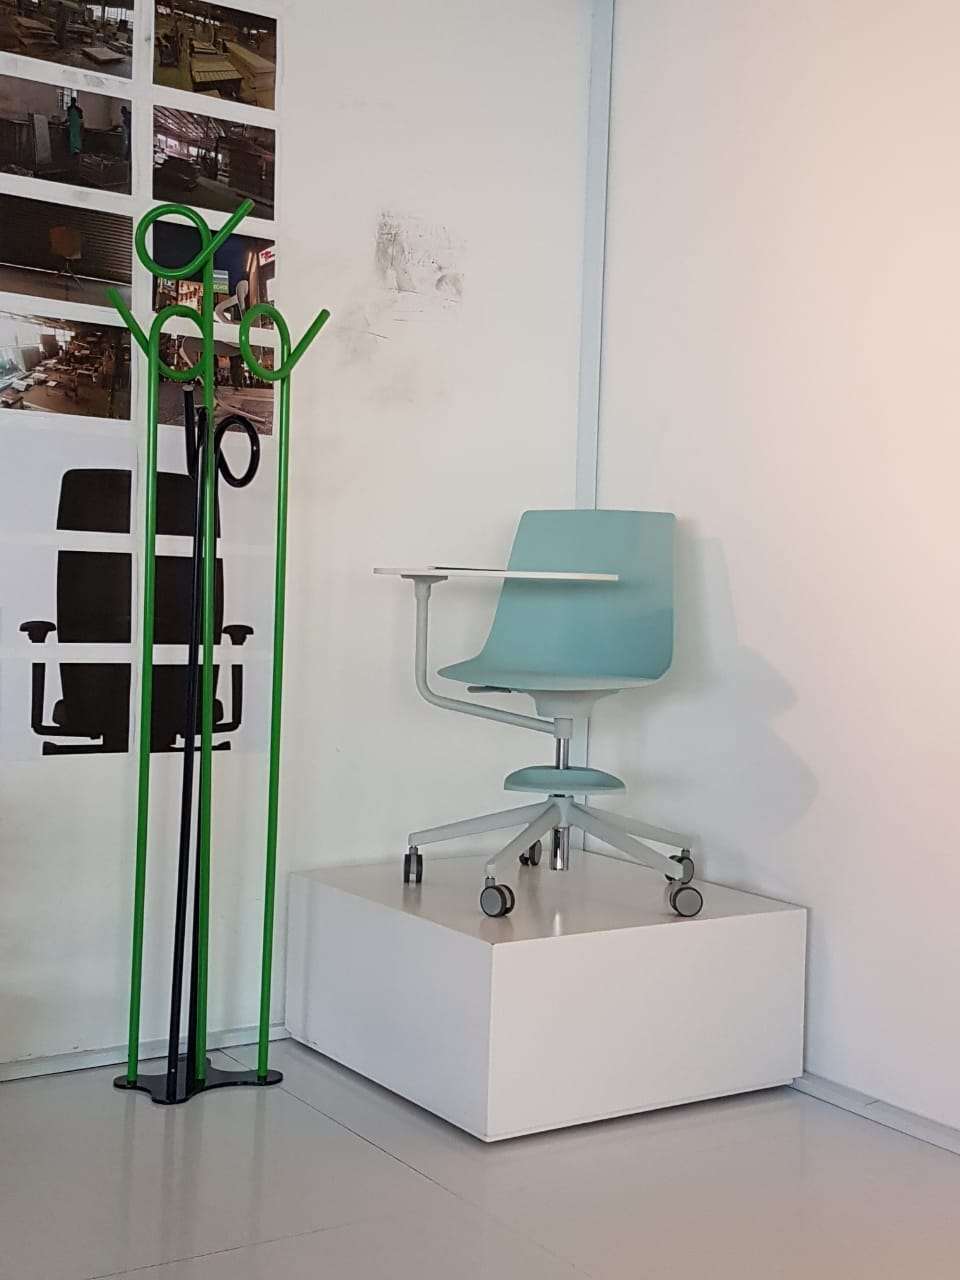 Coat Rack by ON&IN  |  chair by INFINITI   BELOW   clock by MAN&WIFE